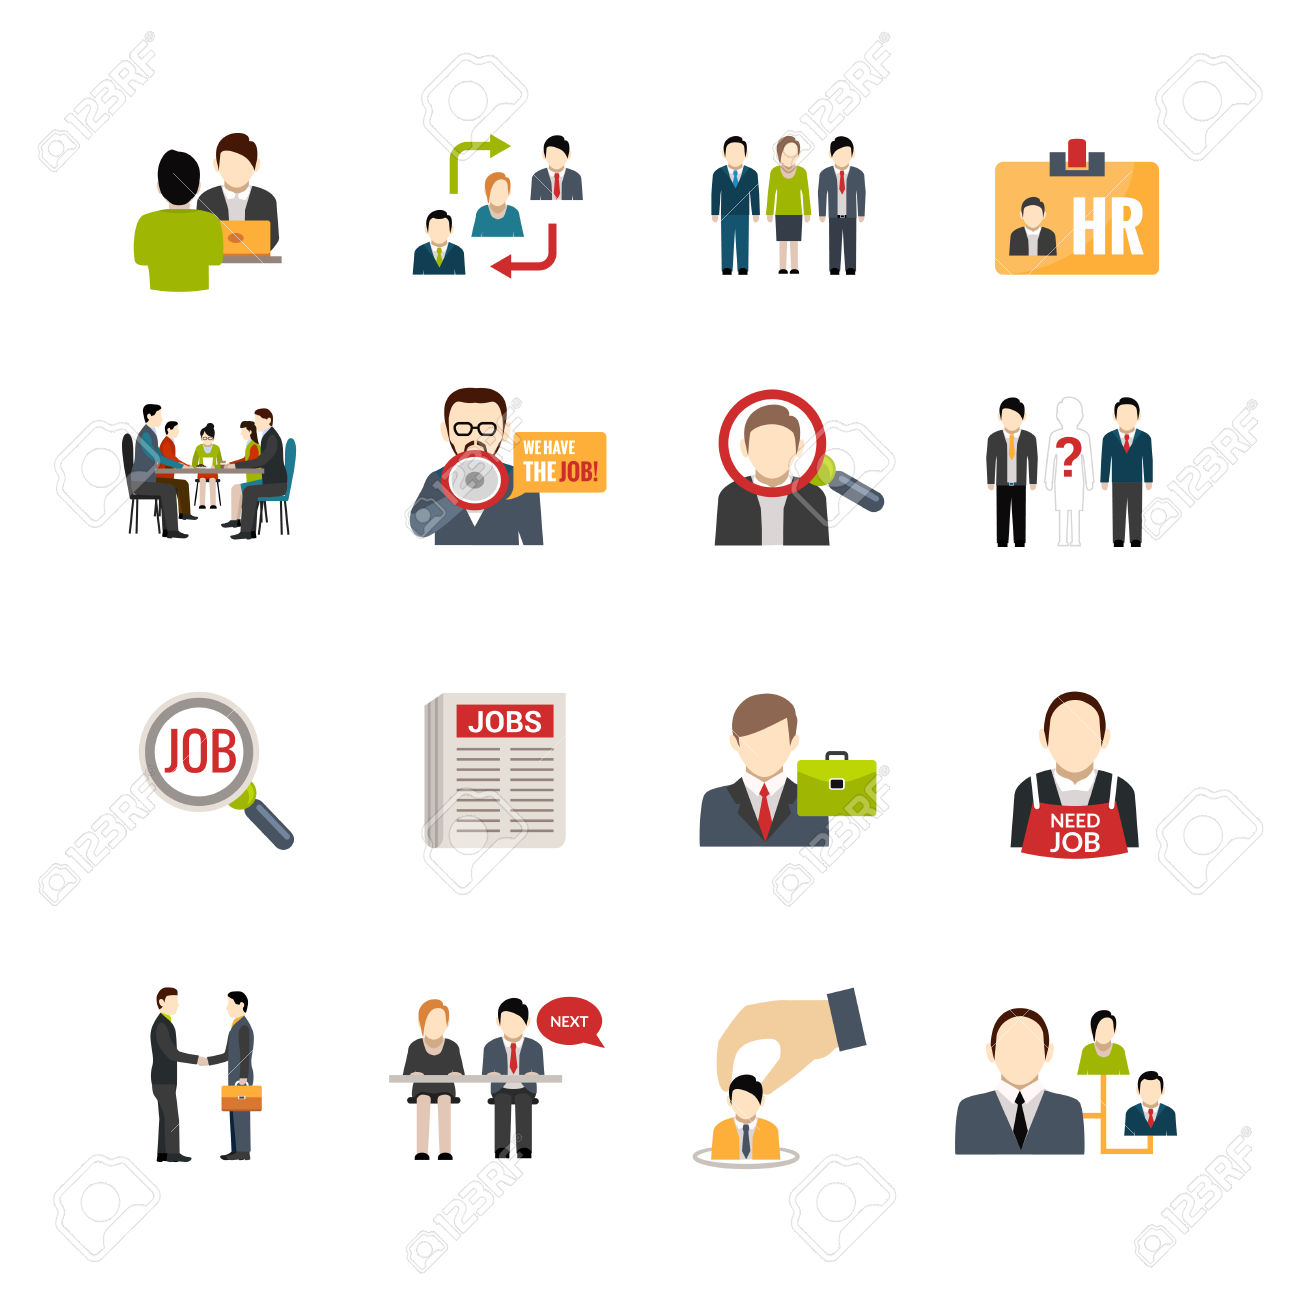 23,697 Recruitment Stock Vector Illustration And Royalty Free.